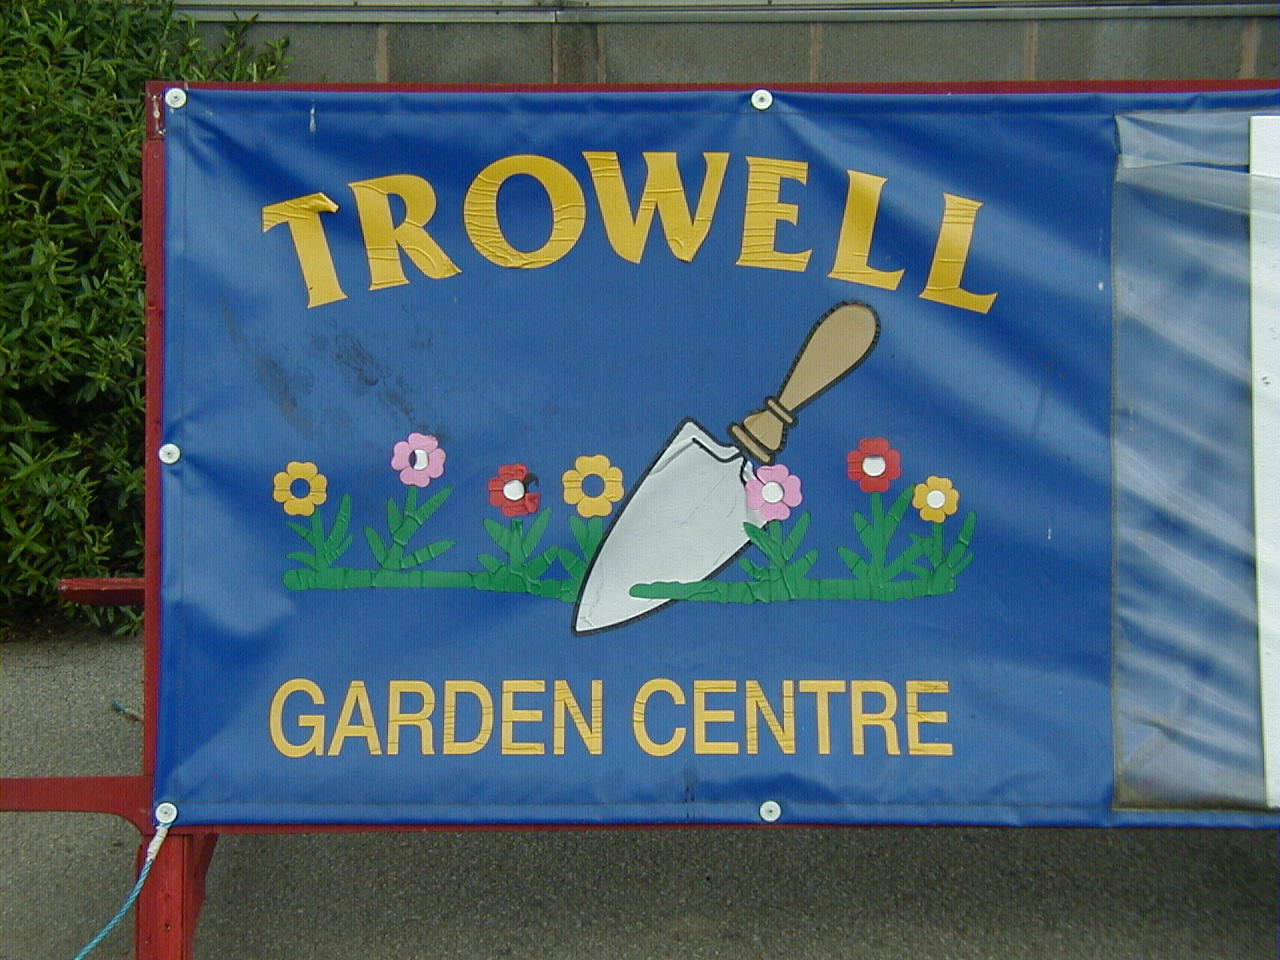 Trowell Garden Centre sign